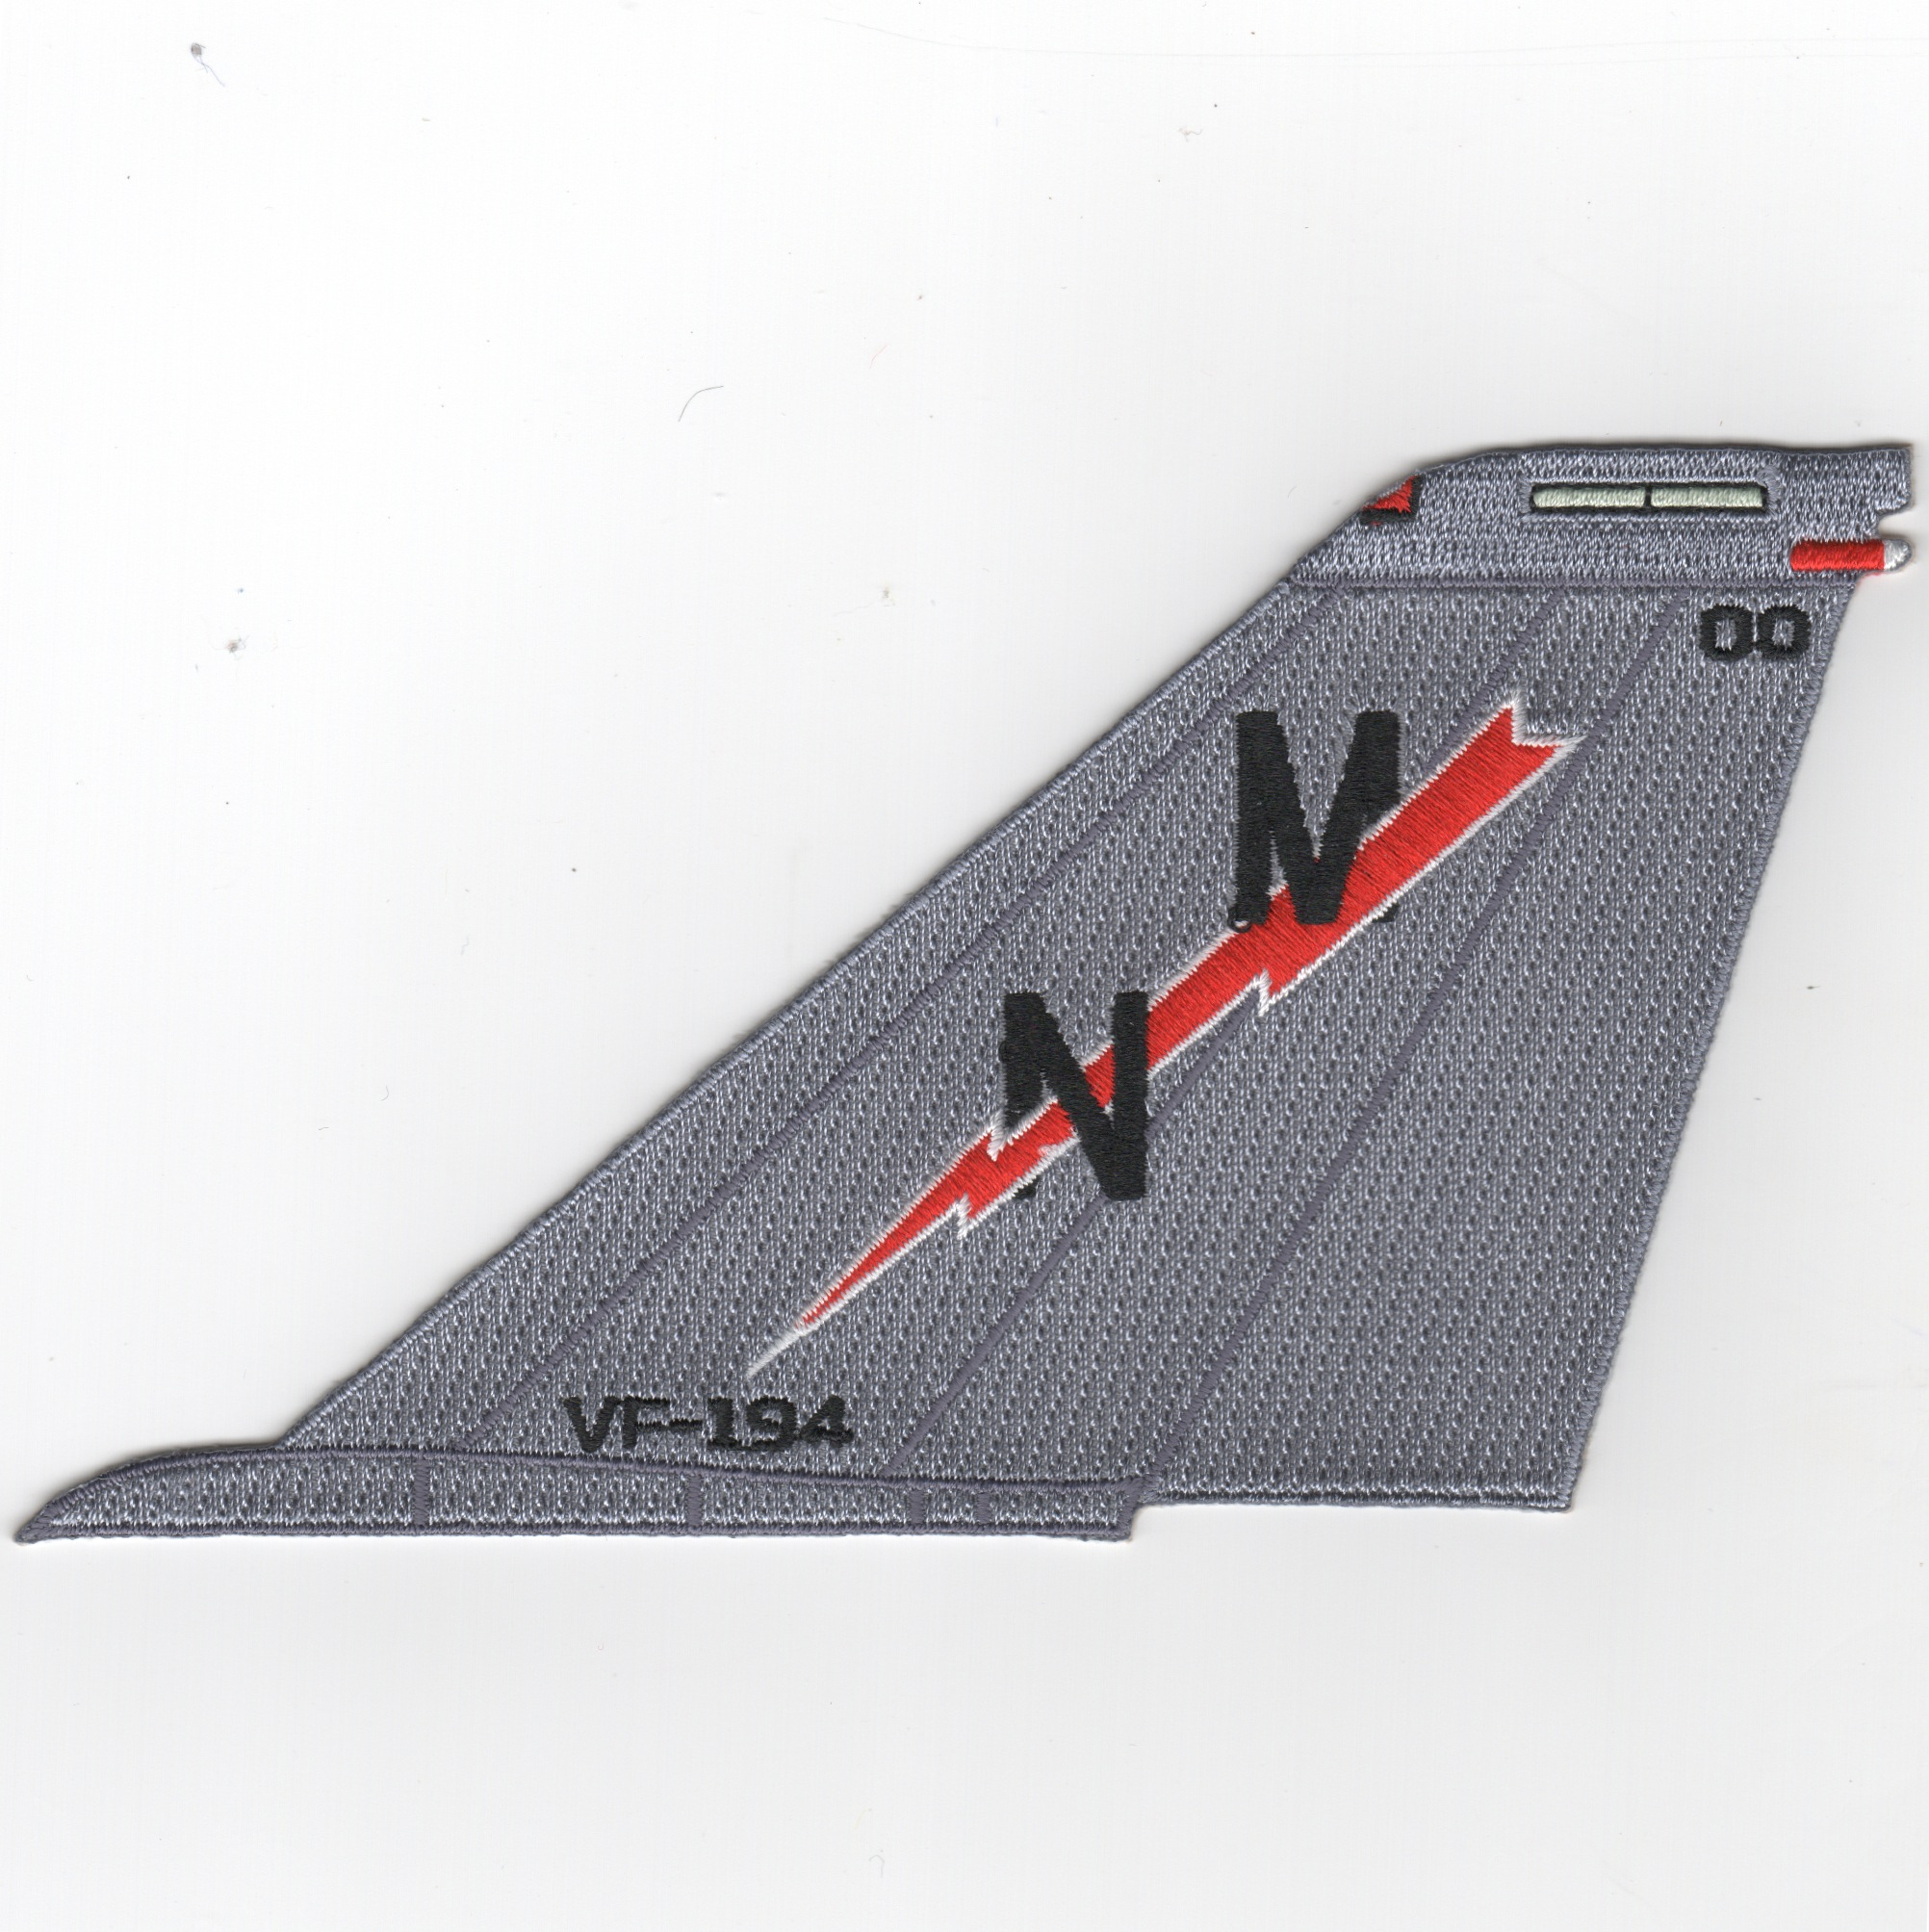 VF-194 F-14 Tailfin (No Text/Red Lightning)